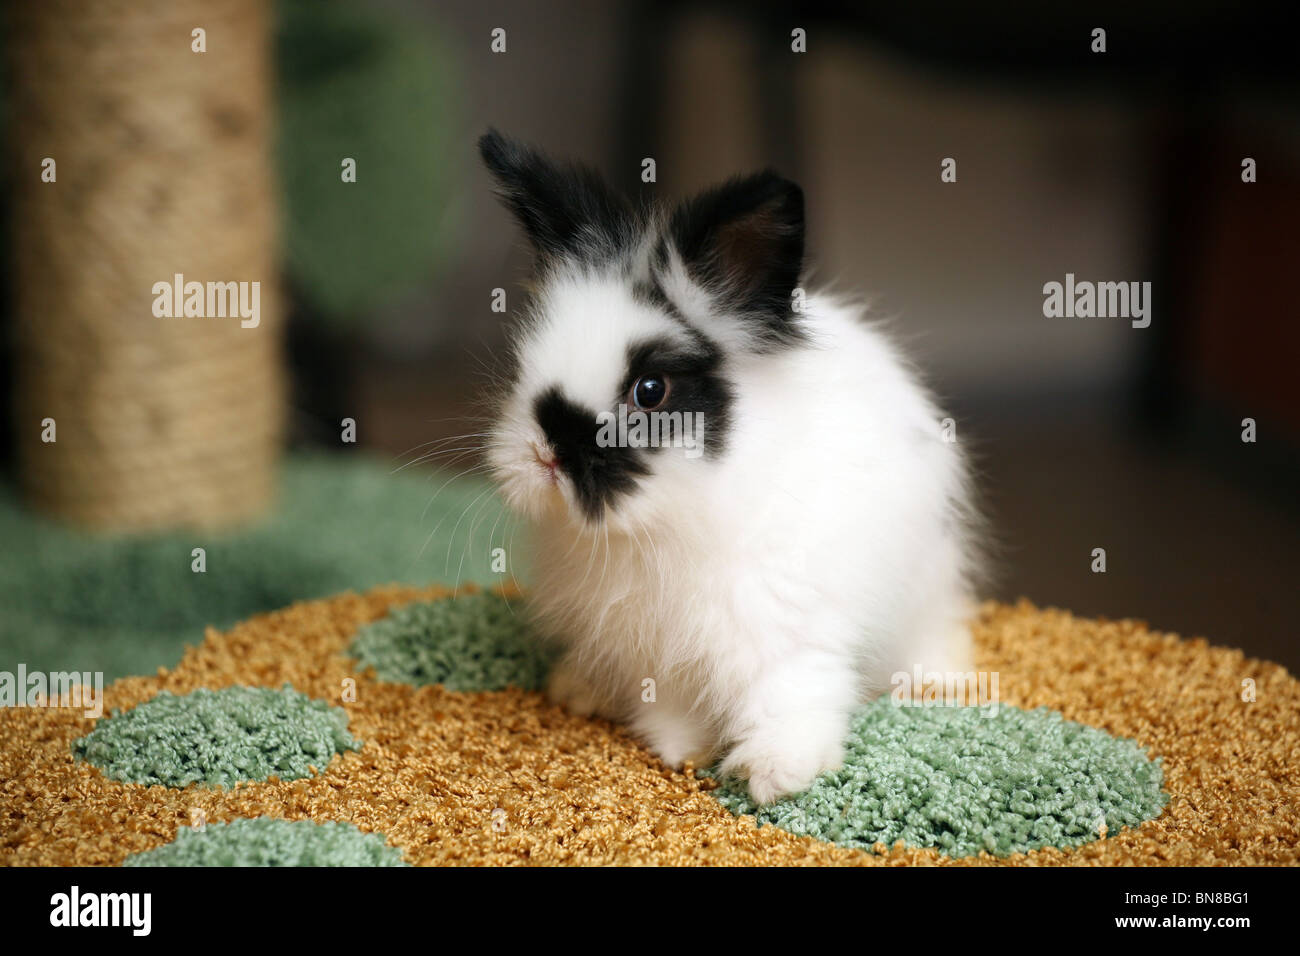 Small black and white rabbit stock image